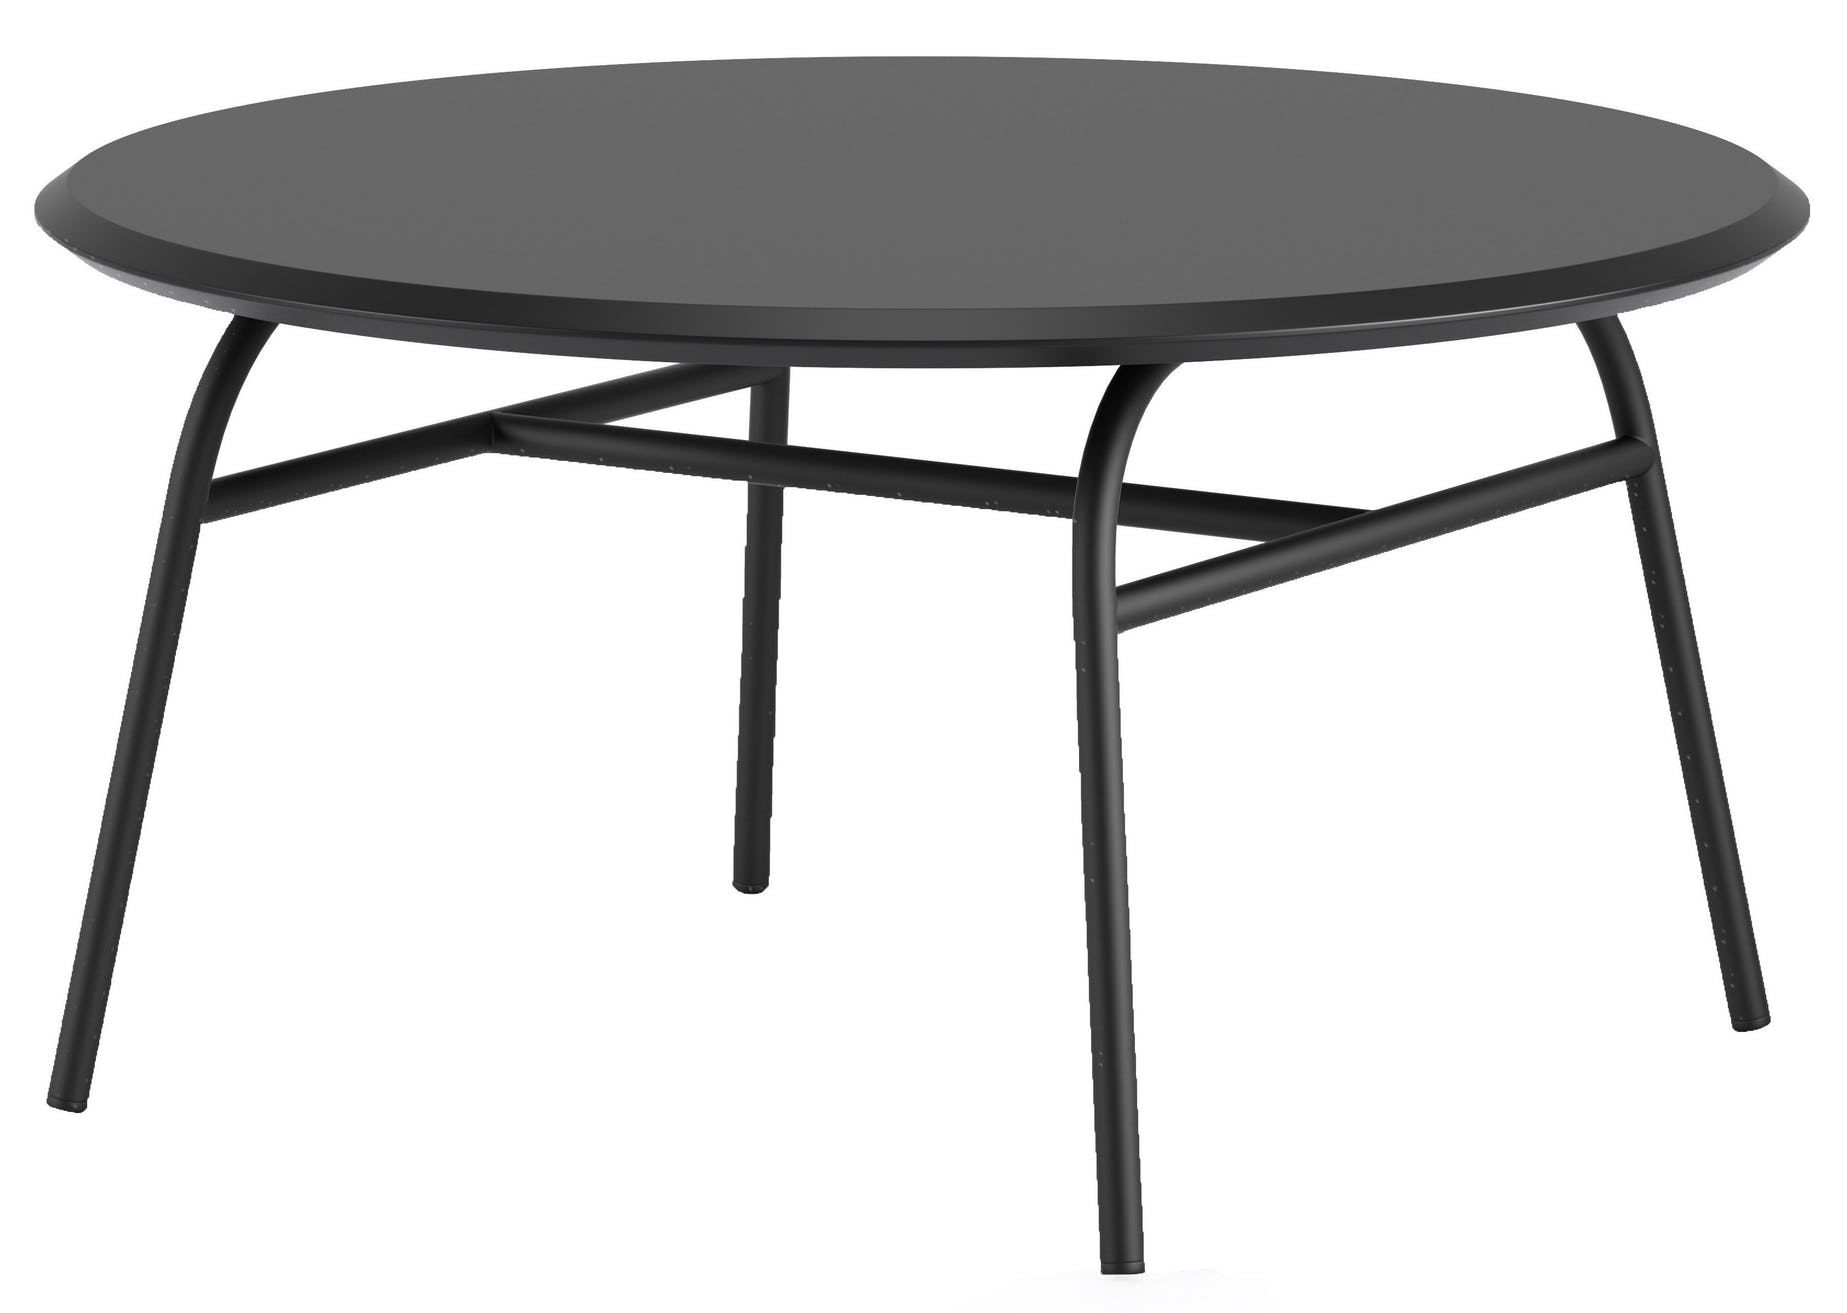 Aleta Low Table By Viccarbe Now Available At Haute Living Low